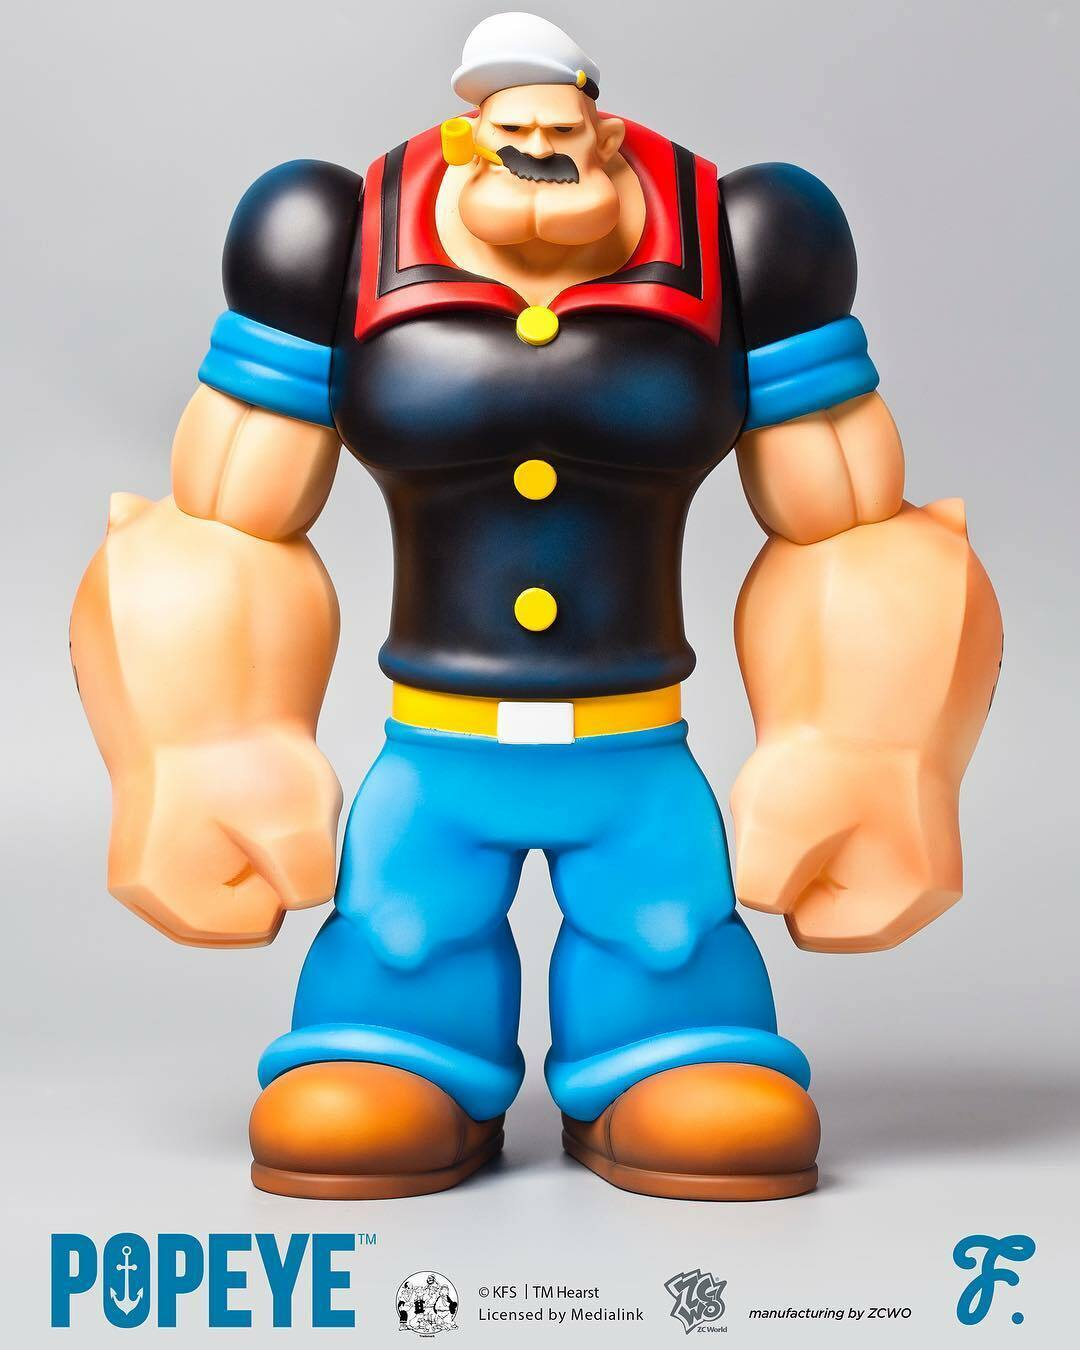 Fools Paradise POPEYE 100% Authentic Licensed by Medialink Vinyl Vinyl Vinyl Figure Toy 1e1